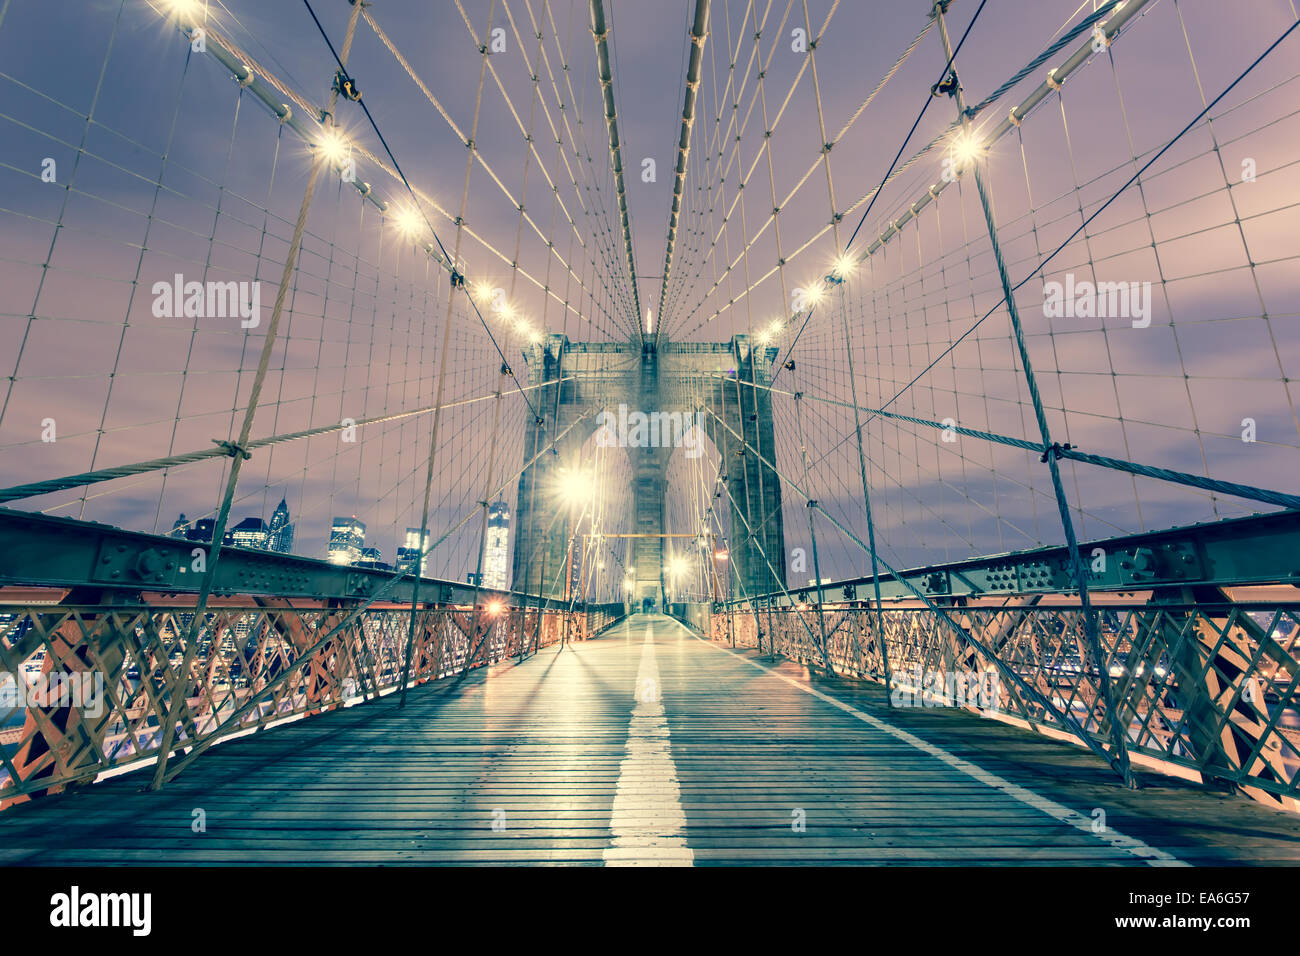 USA, New York State, New York, Vue du pont de Brooklyn Photo Stock